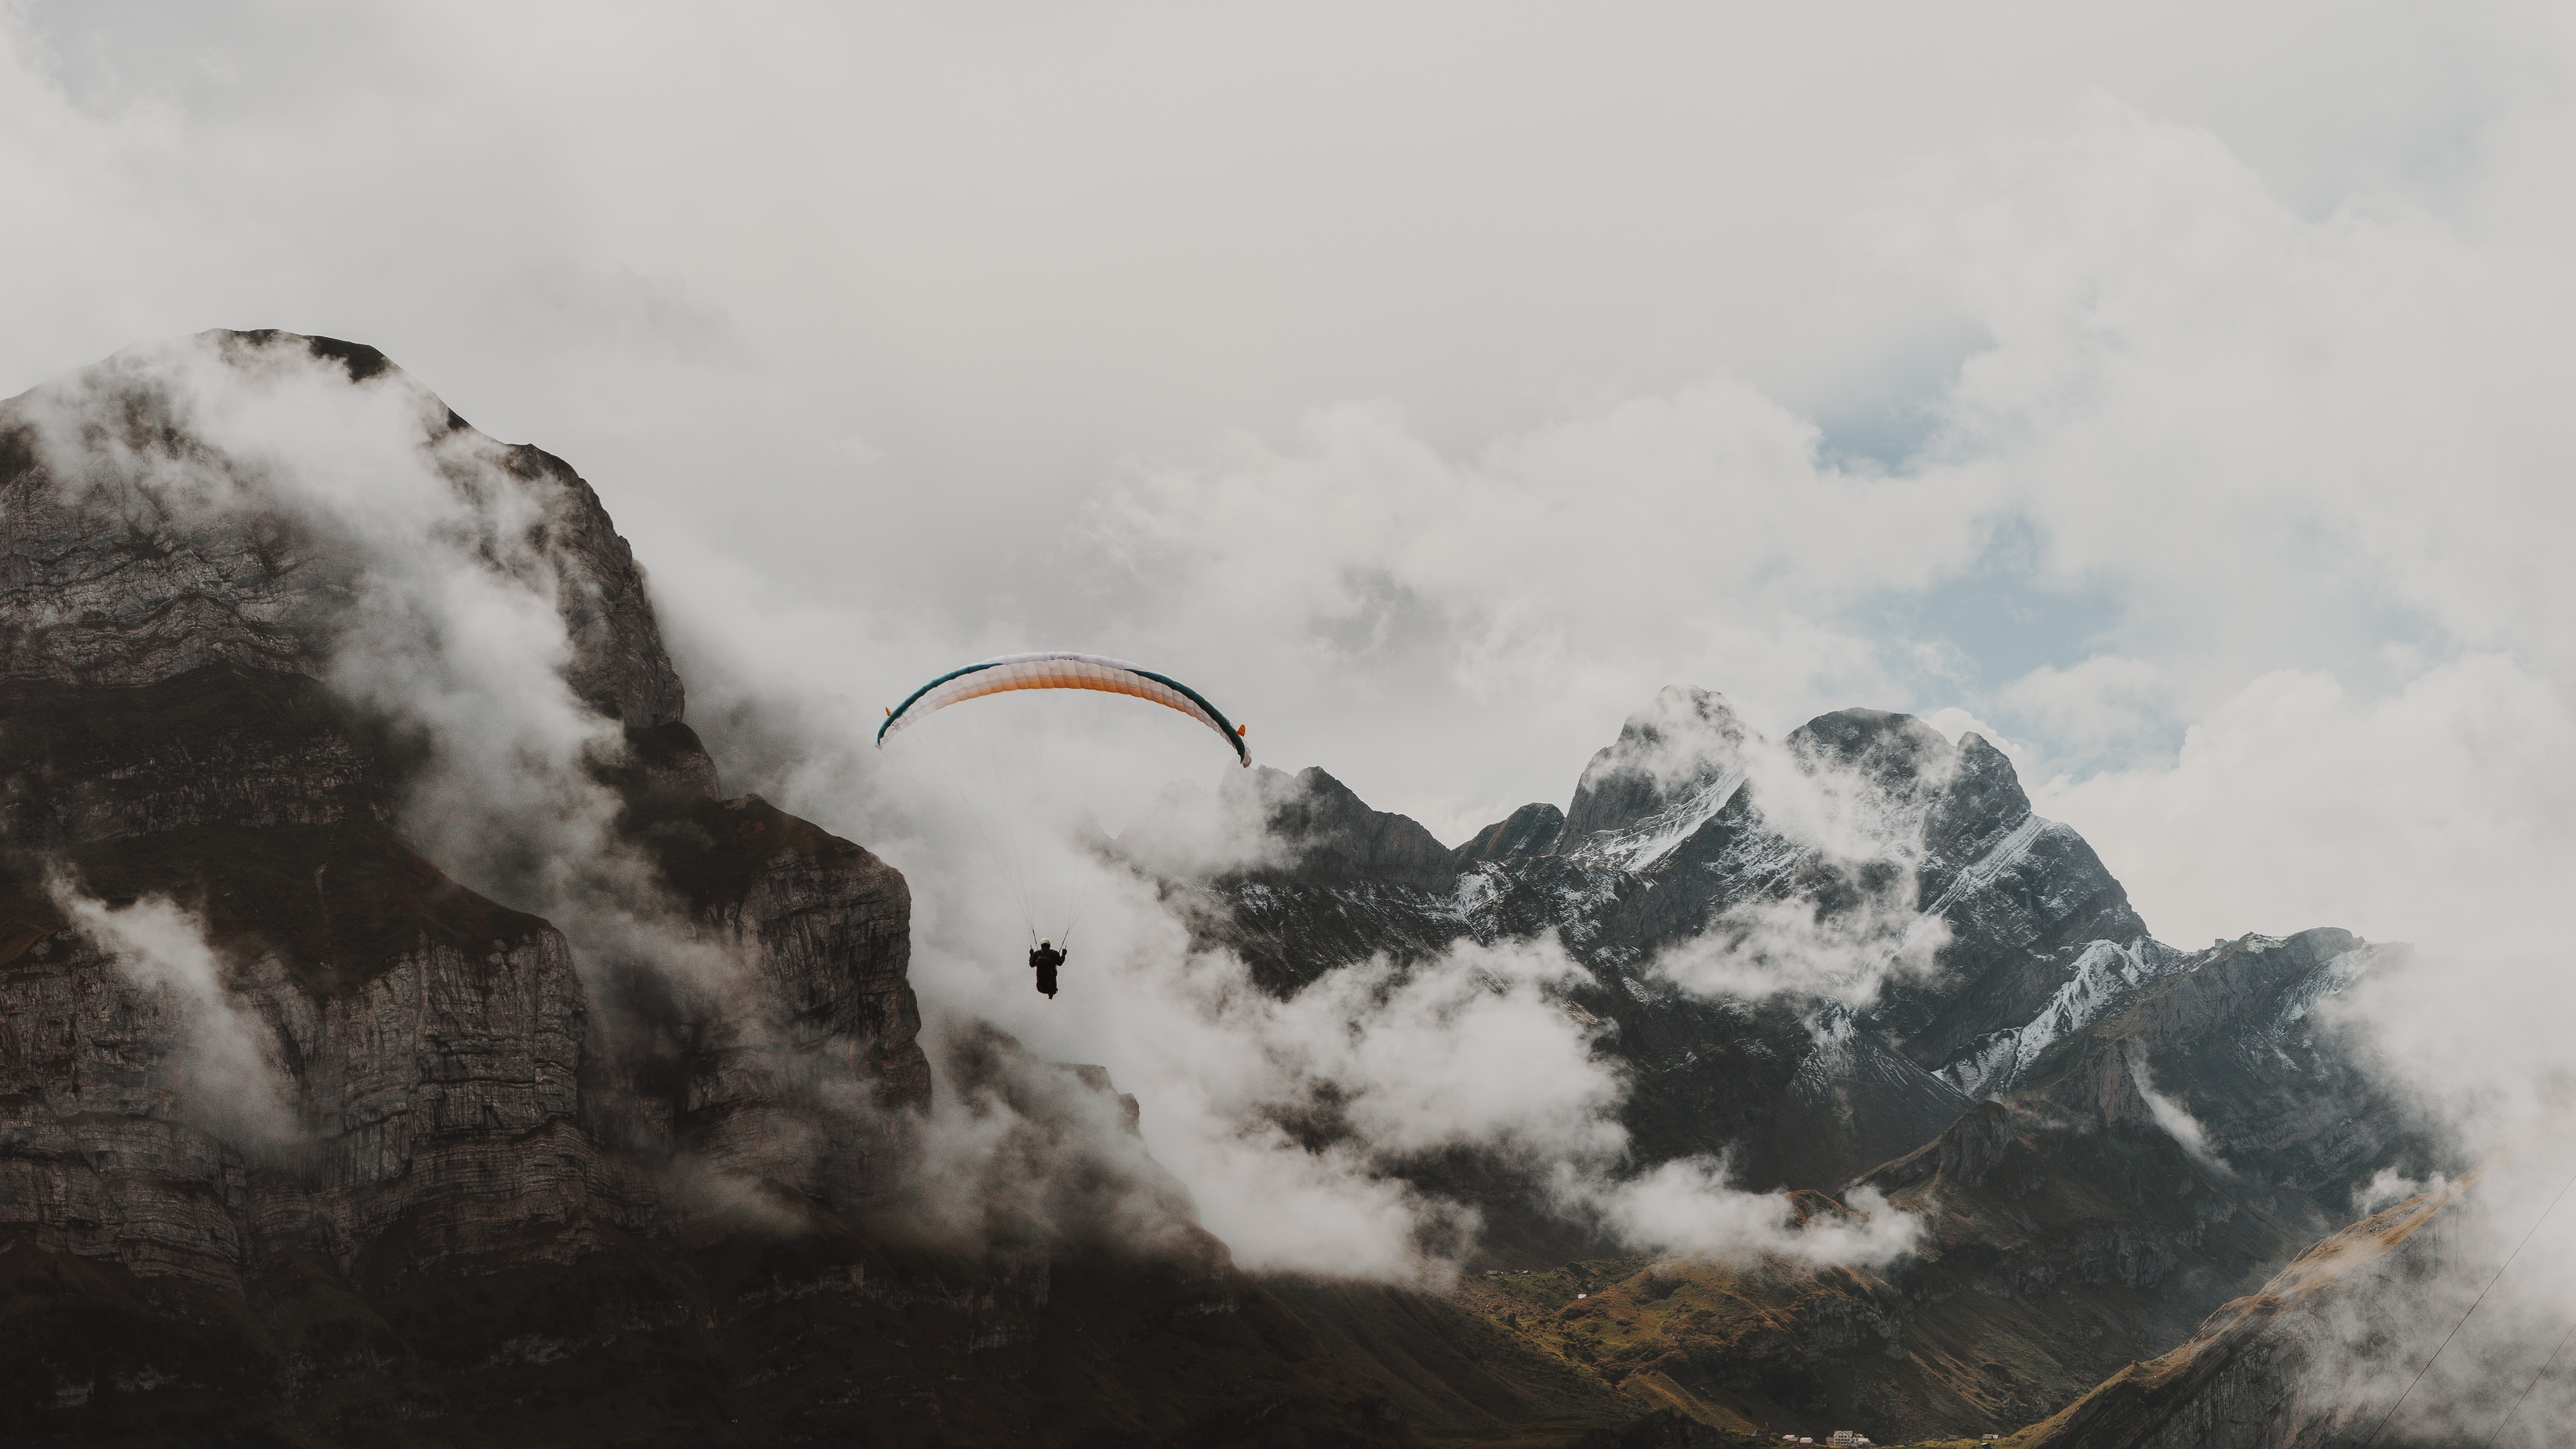 person on parachute near the mountain